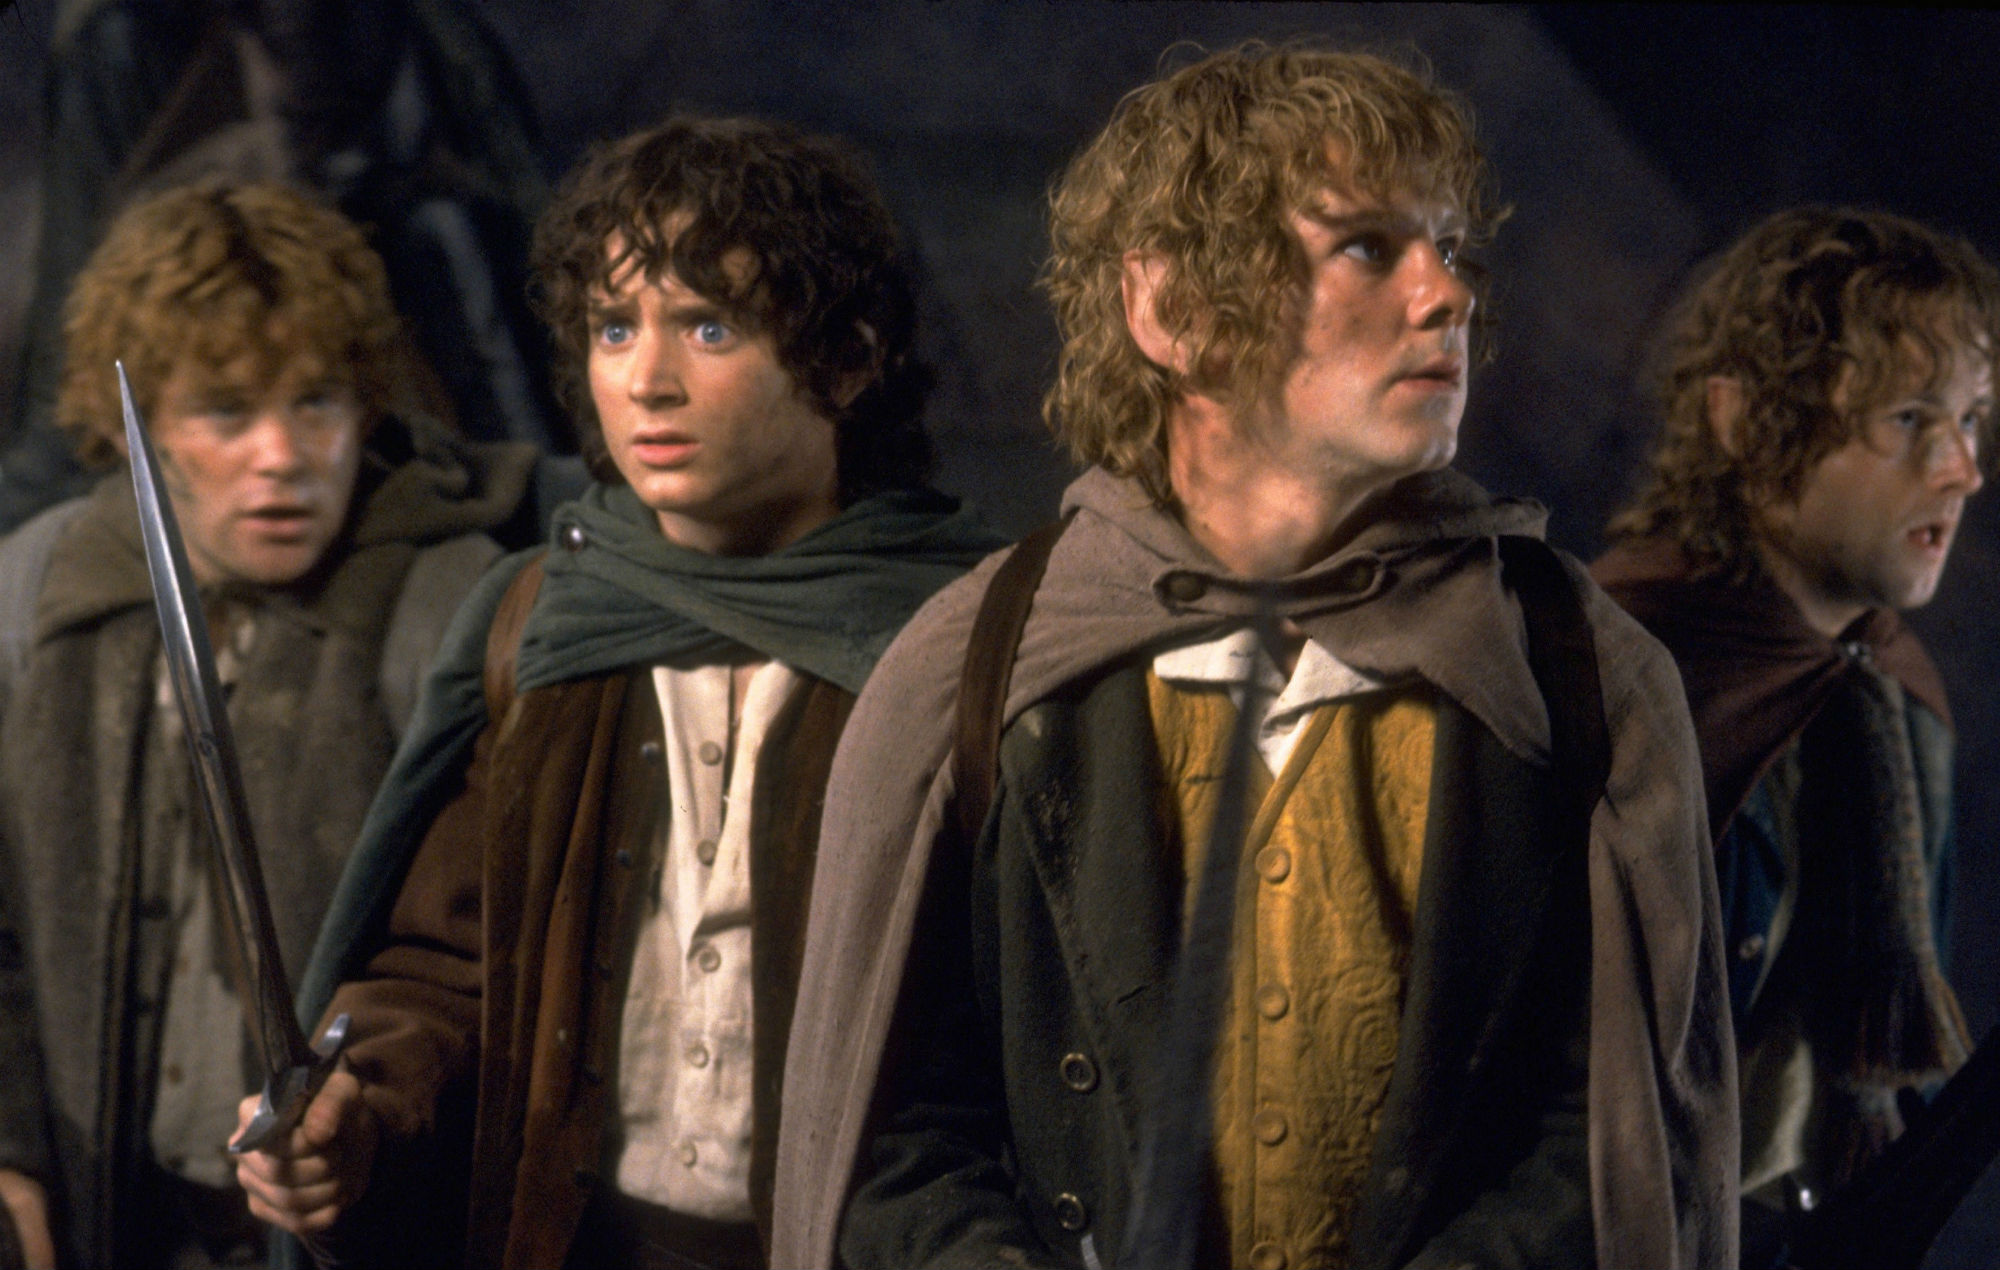 The Lord of the Rings Trilogy (2001-2003)